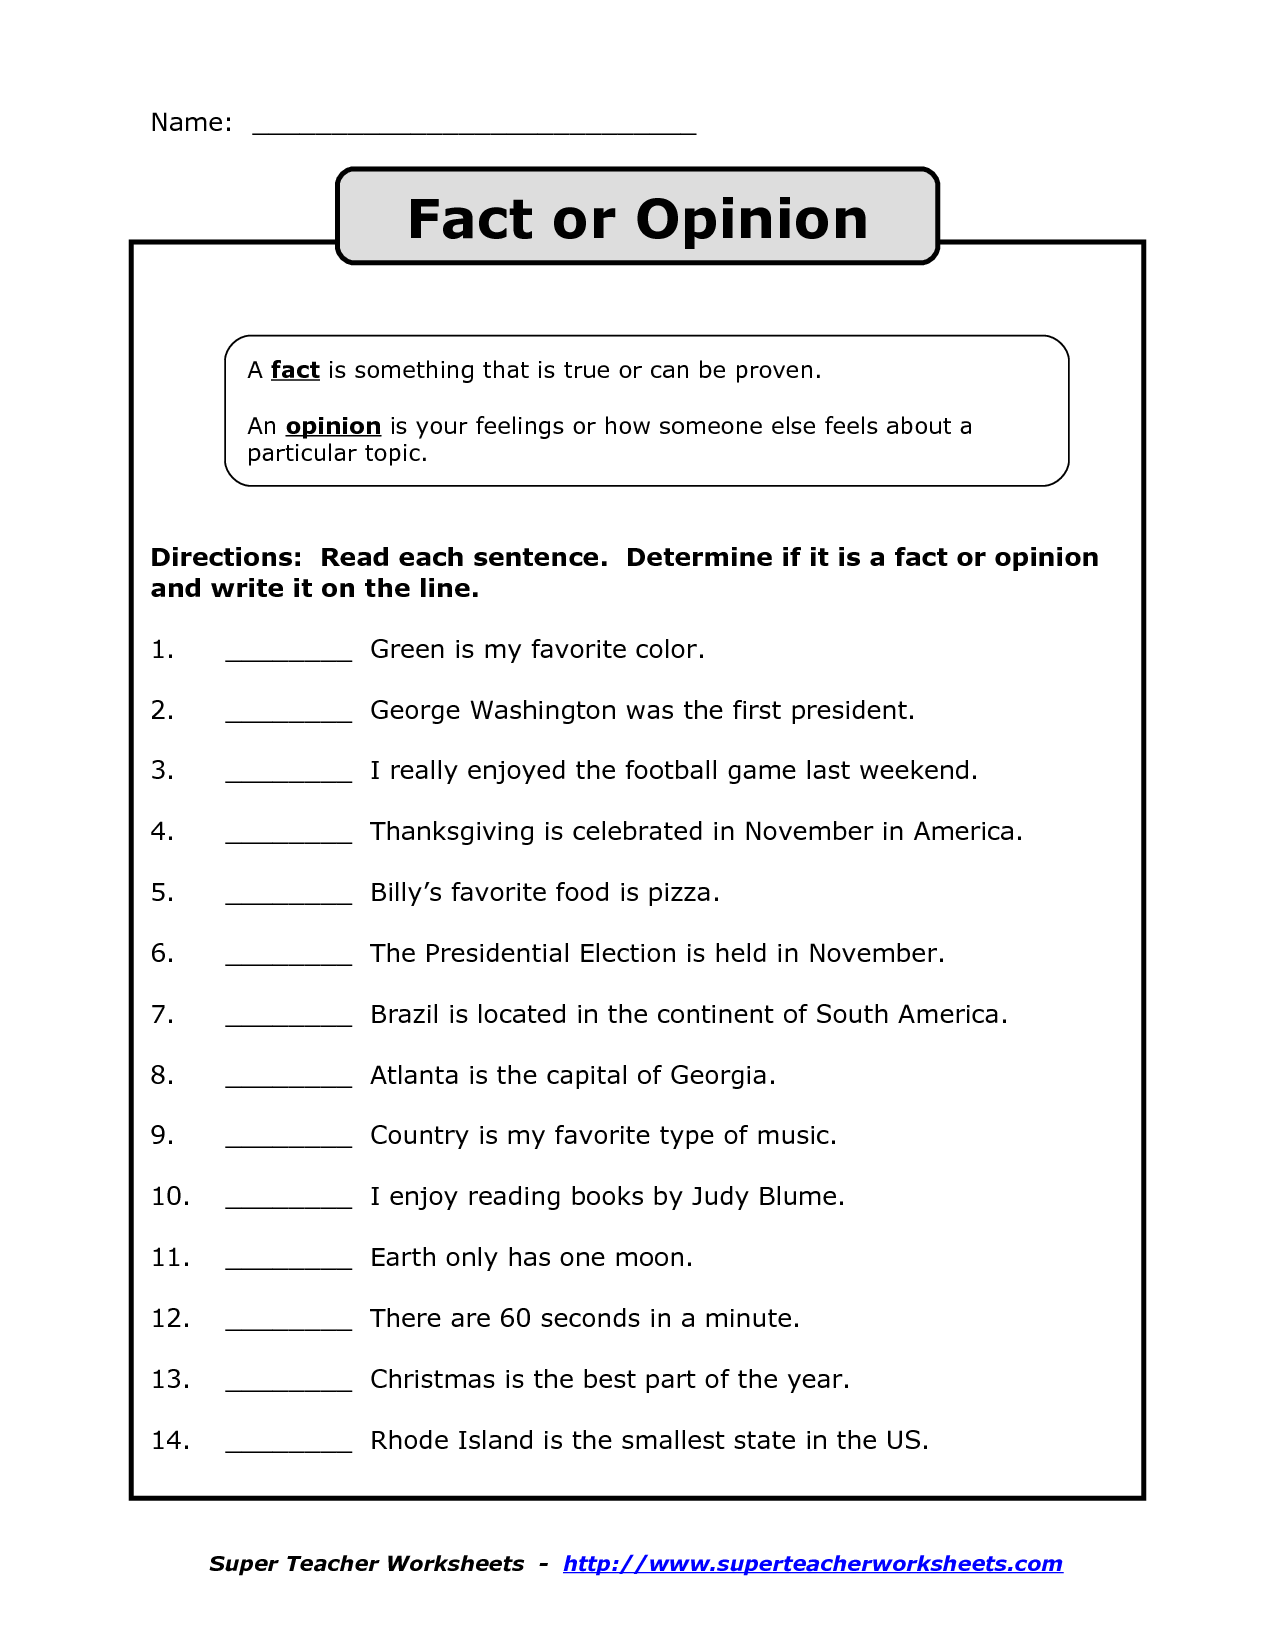 Worksheets Fact Vs Opinion Worksheets fact vs opinion worksheet google search social studies search